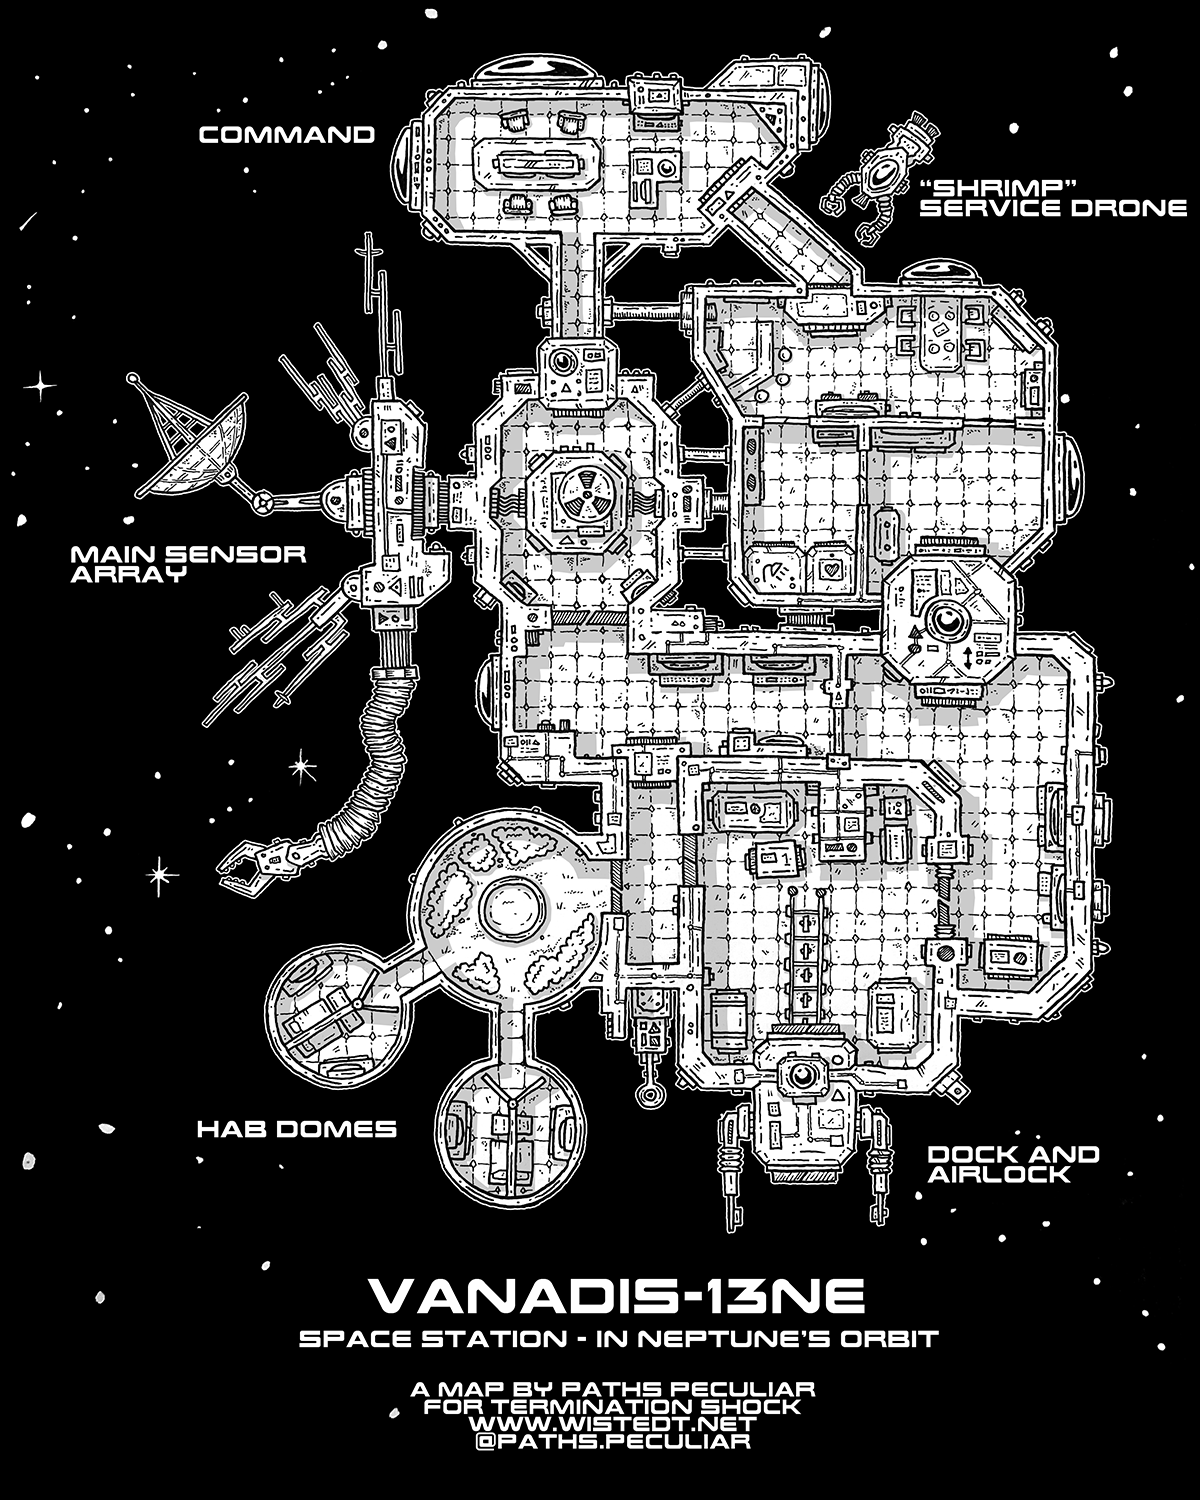 VANADIS-13NE Space station blueprint